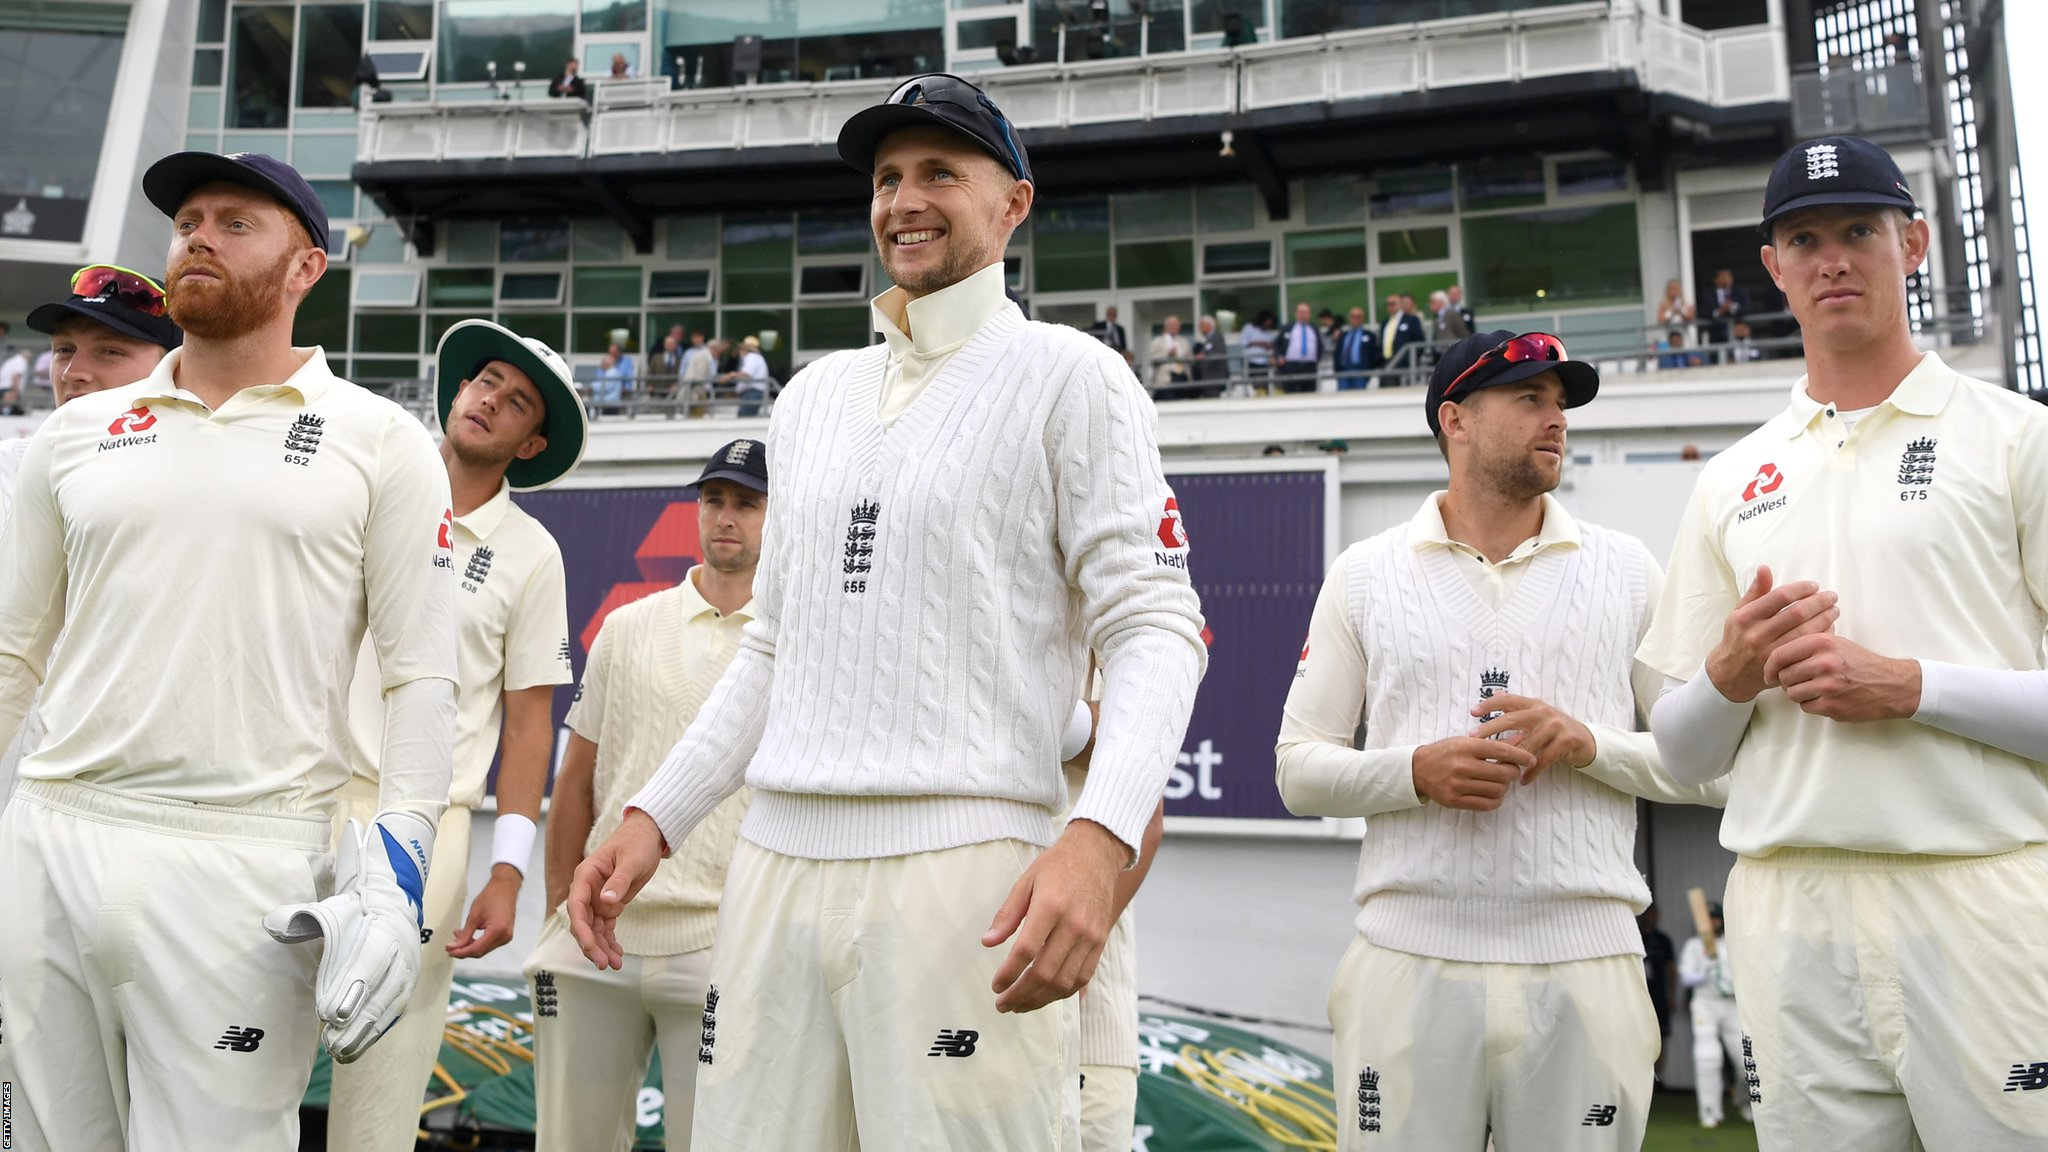 Terrible one week, brilliant the next - why are England so inconsistent?